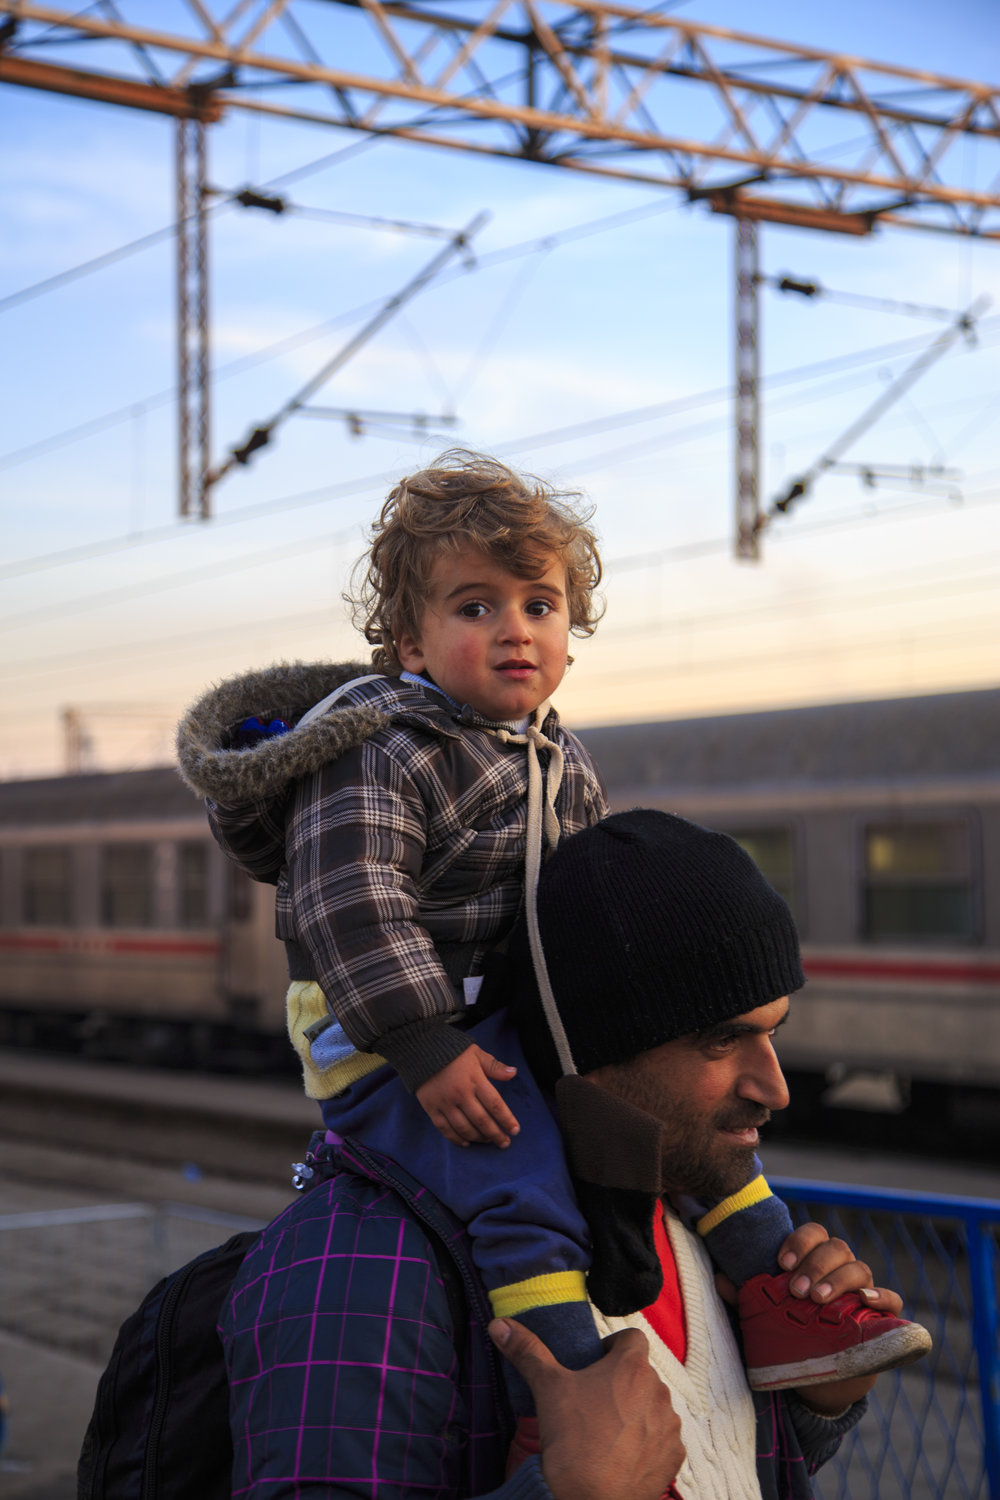 A Father and Son lineup to cross the border into Croatia on their quest for safety and a new life during the height of the Syrian refugee crisis.